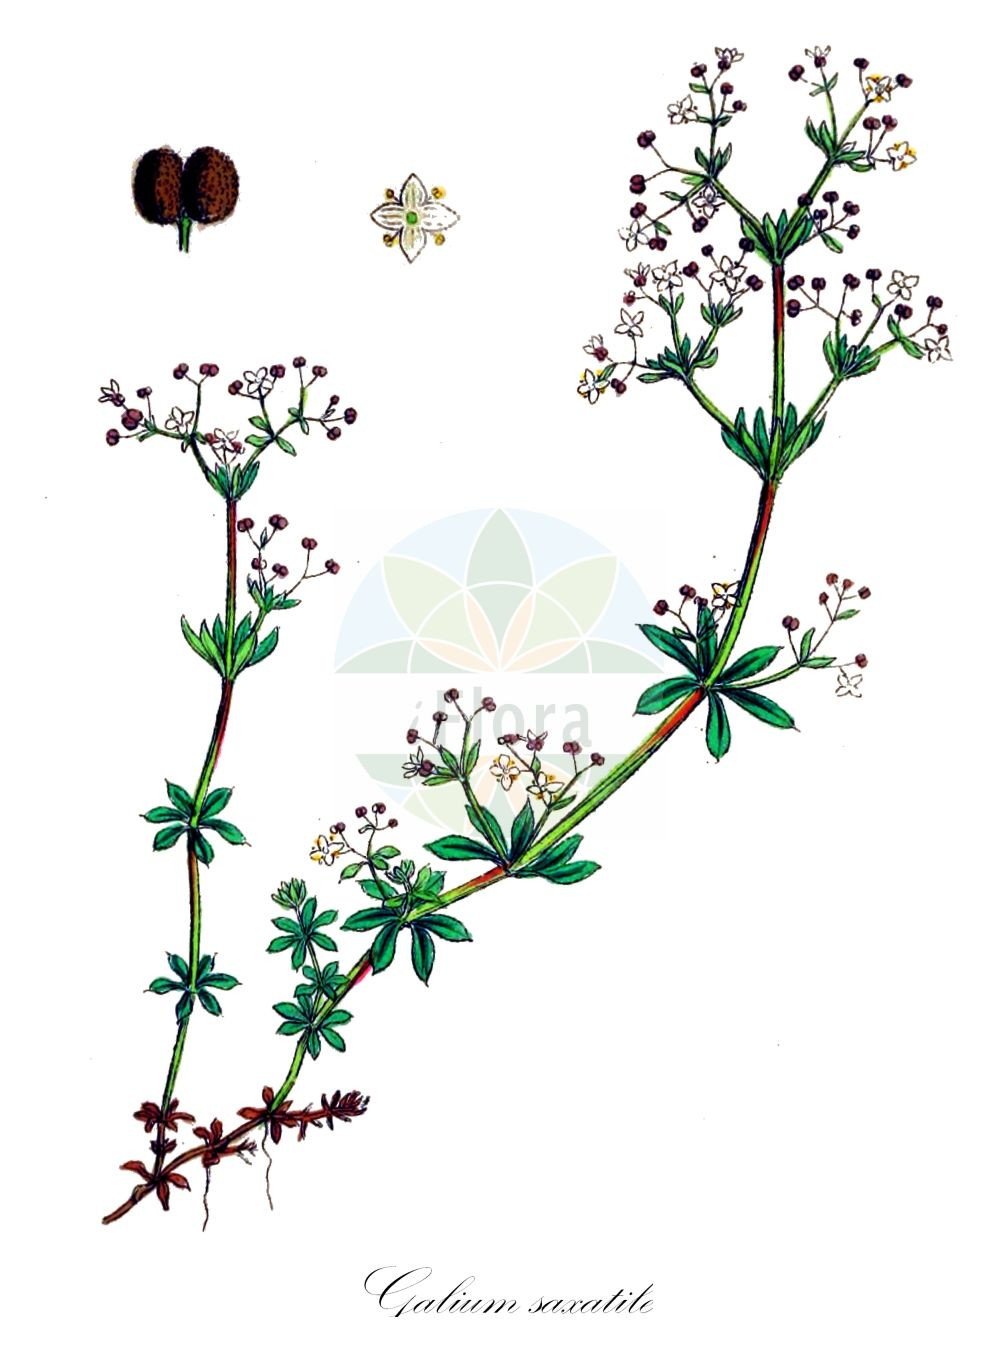 Historische Abbildung von Galium saxatile (Harzer Labkraut - Heath Bedstraw). Das Bild zeigt Blatt, Bluete, Frucht und Same. ---- Historical Drawing of Galium saxatile (Harzer Labkraut - Heath Bedstraw).The image is showing leaf, flower, fruit and seed.(Galium saxatile,Harzer Labkraut,Heath Bedstraw,Galium harcynicum,Galium pawlowskii,,Felsen-Labkraut,Galium,Labkraut,Bedstraw,Rubiaceae,Roetegewaechse;Kaffeegewaechse;Krappgewaechse;Labkrautgewaechse,Bedstraw family,Blatt,Bluete,Frucht,Same,leaf,flower,fruit,seed,Sowerby (1790-1813))